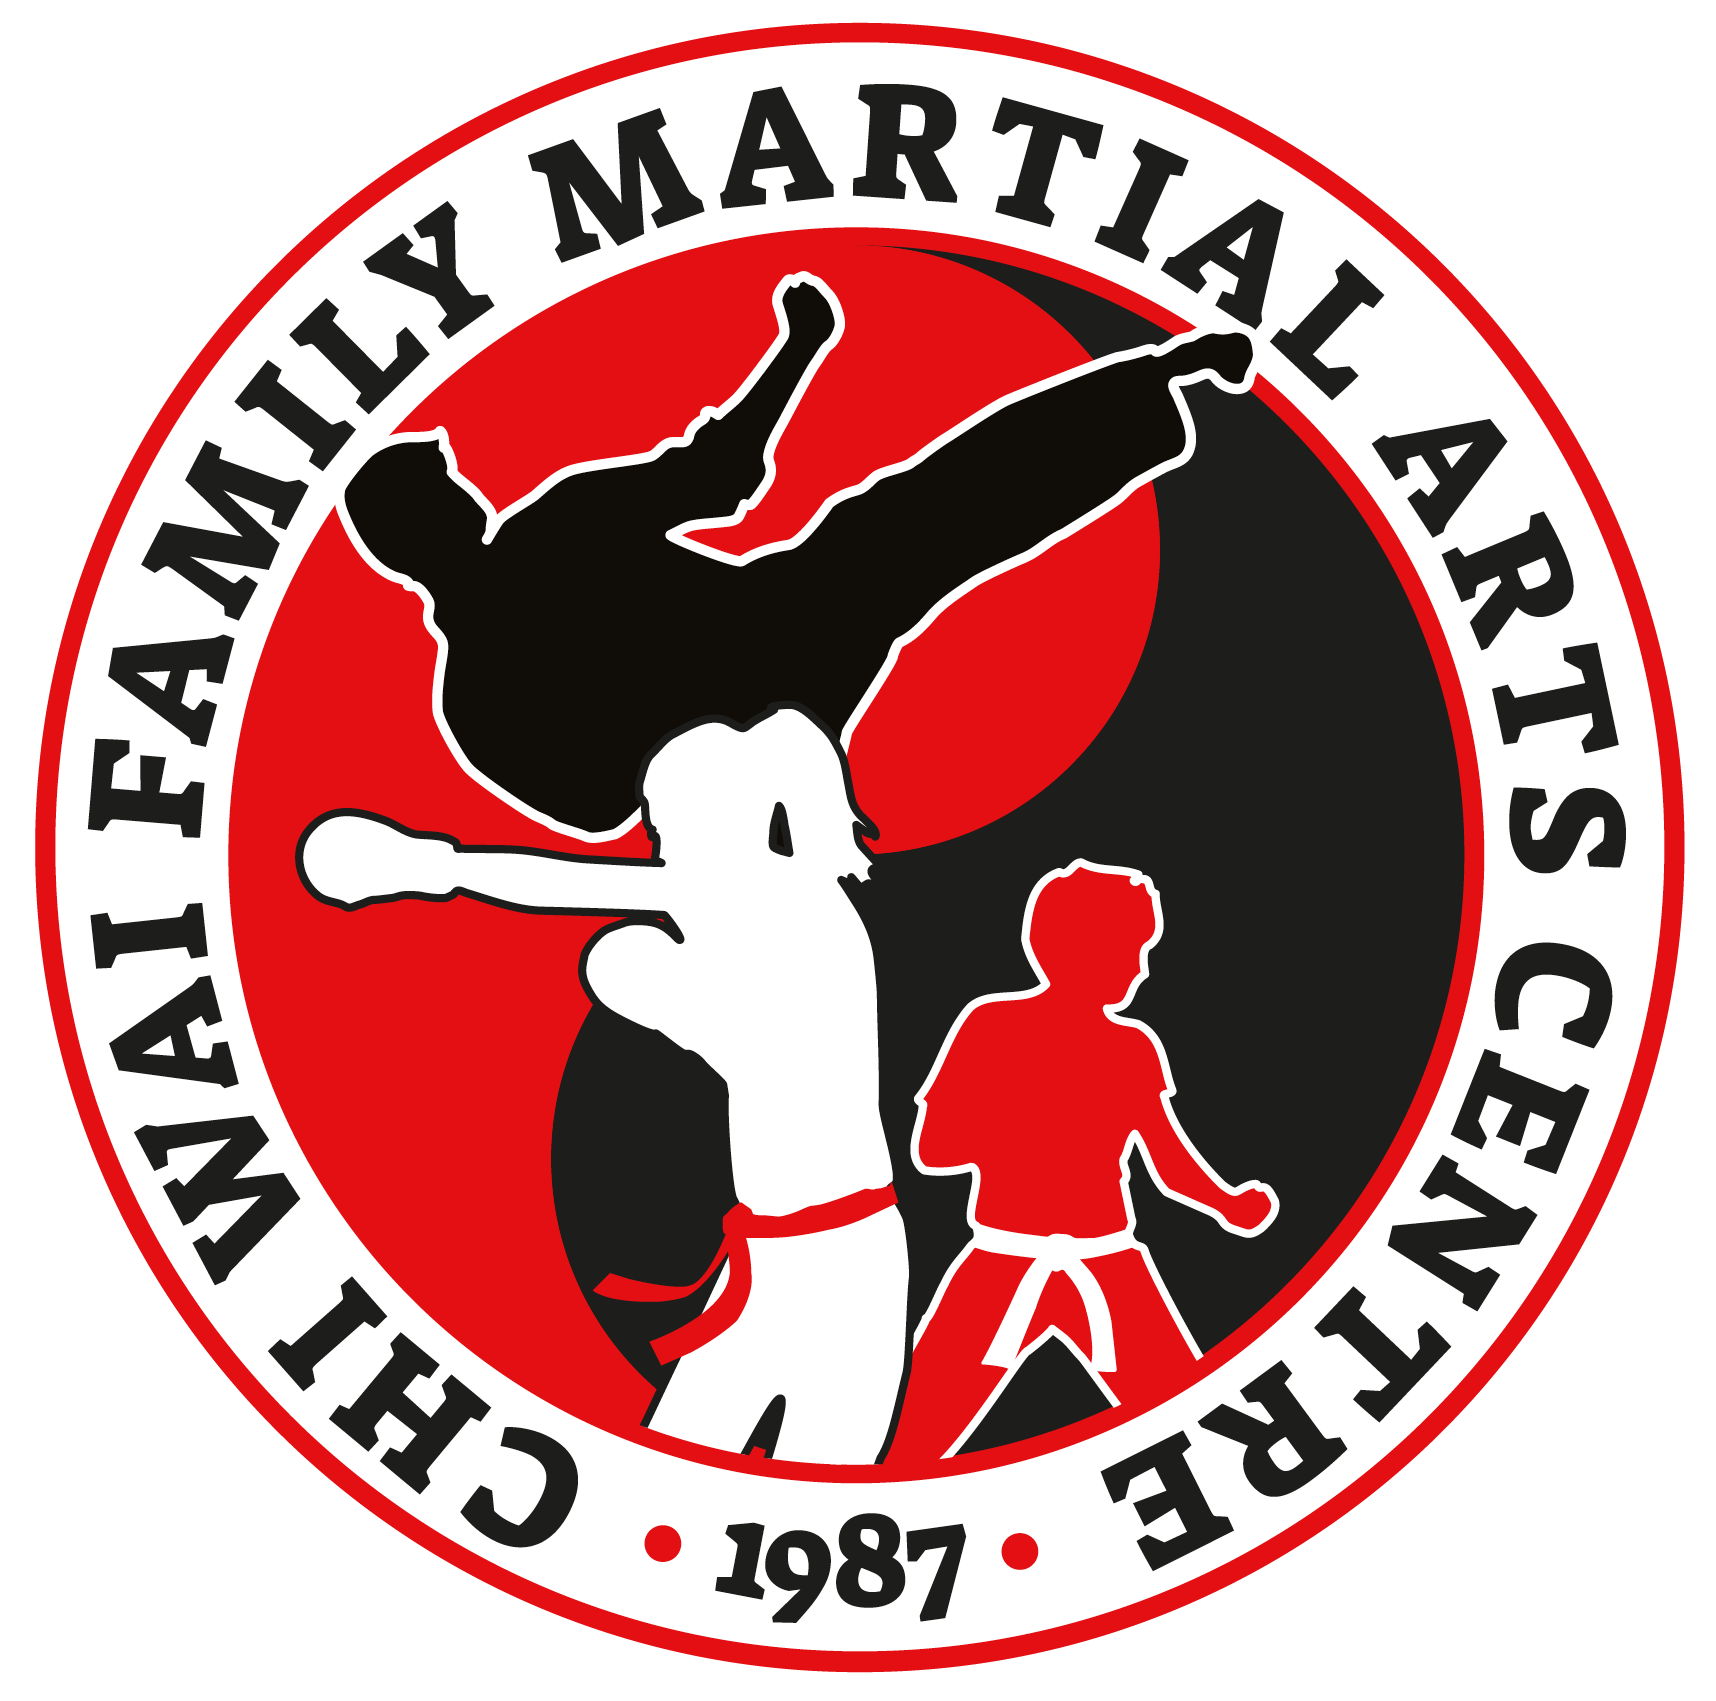 Chi Wai Family Martial Arts Centre